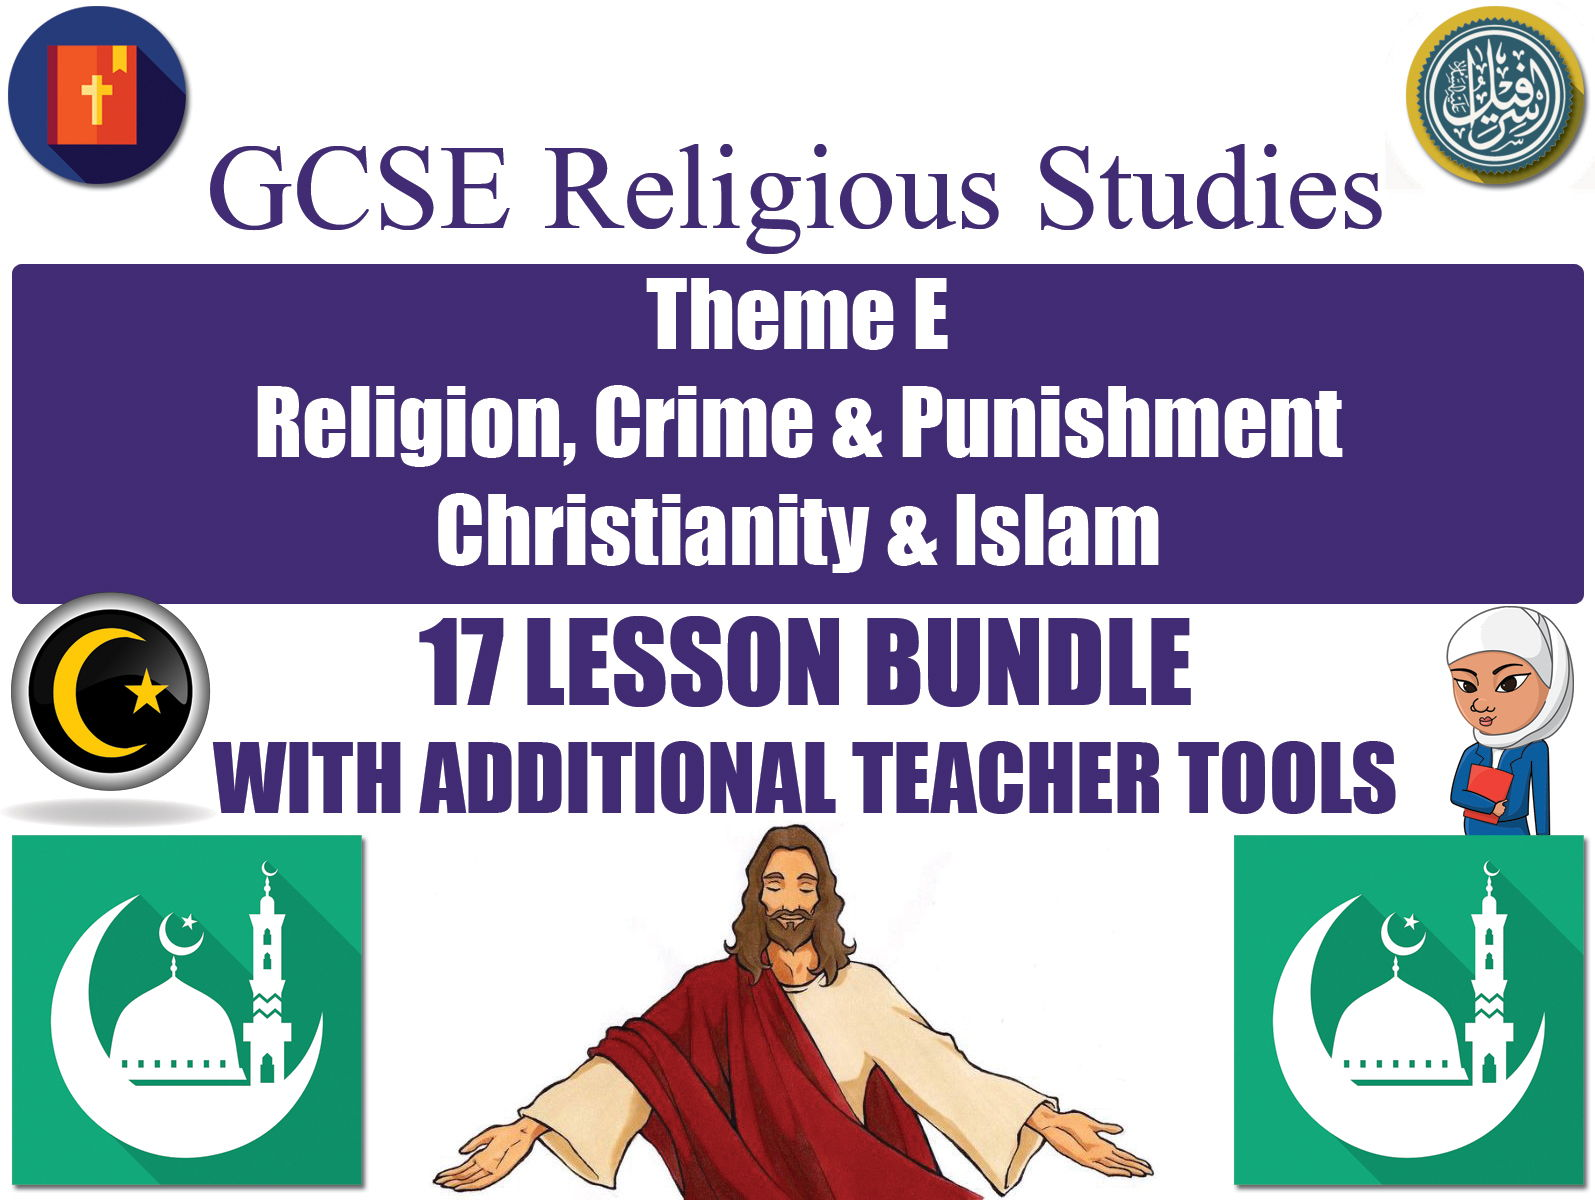 GCSE Islam & Christianity - Religion, Crime & Punishment (17 Lessons)